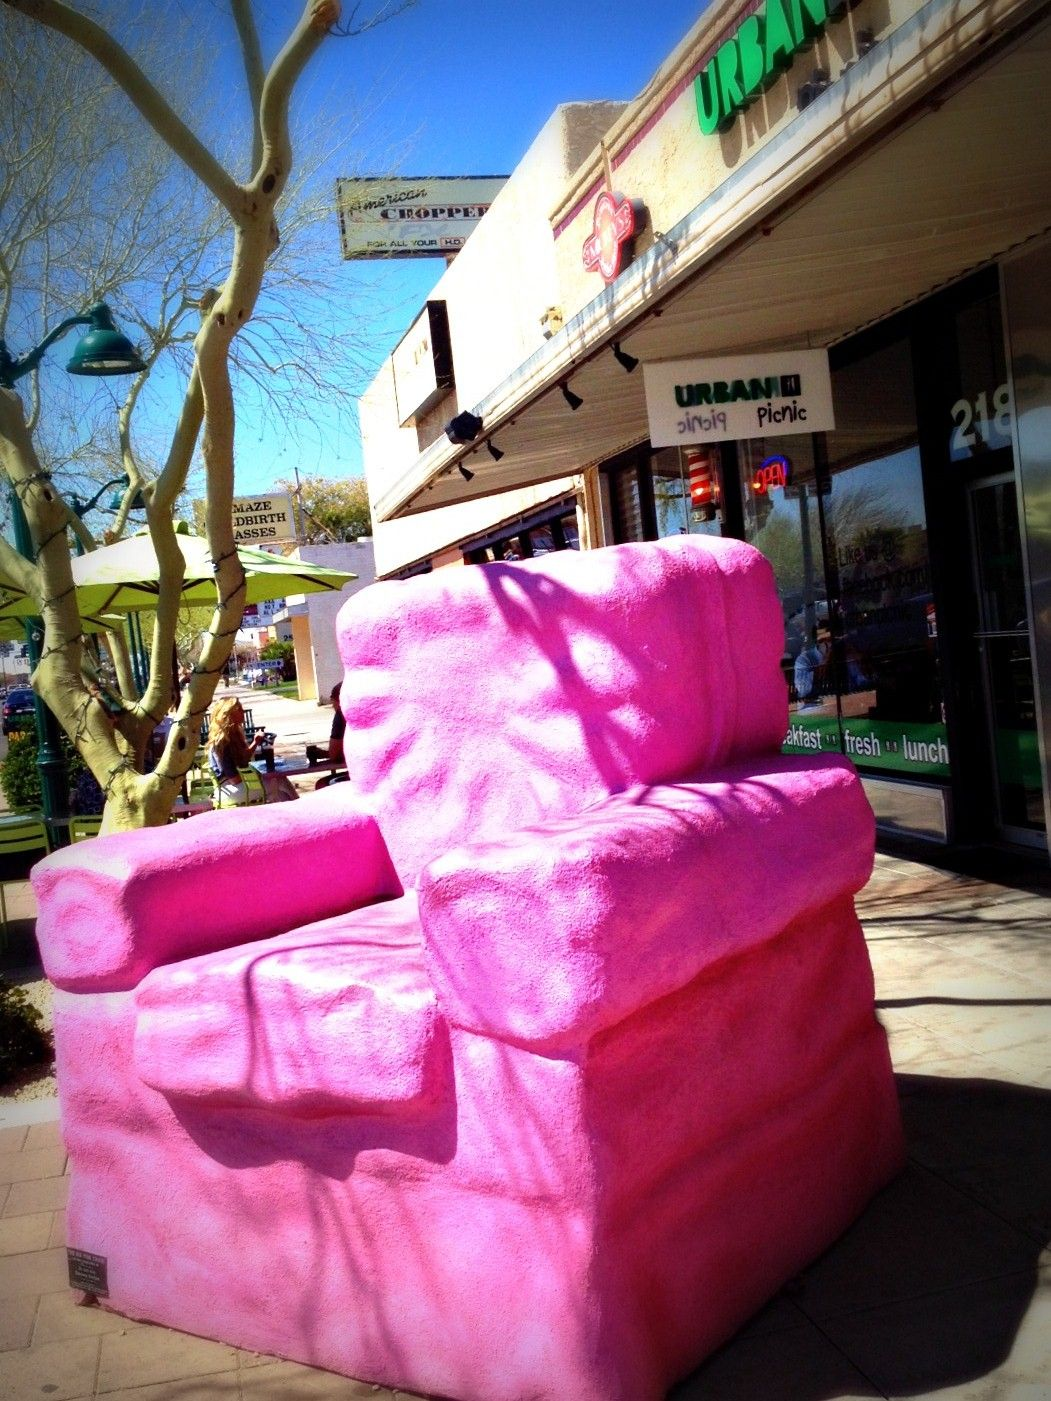 Ordinaire The BIG Pink Chair In Downtown Mesa Arizona. Discover Over 35 Art  Sculptures In DT Mesa!